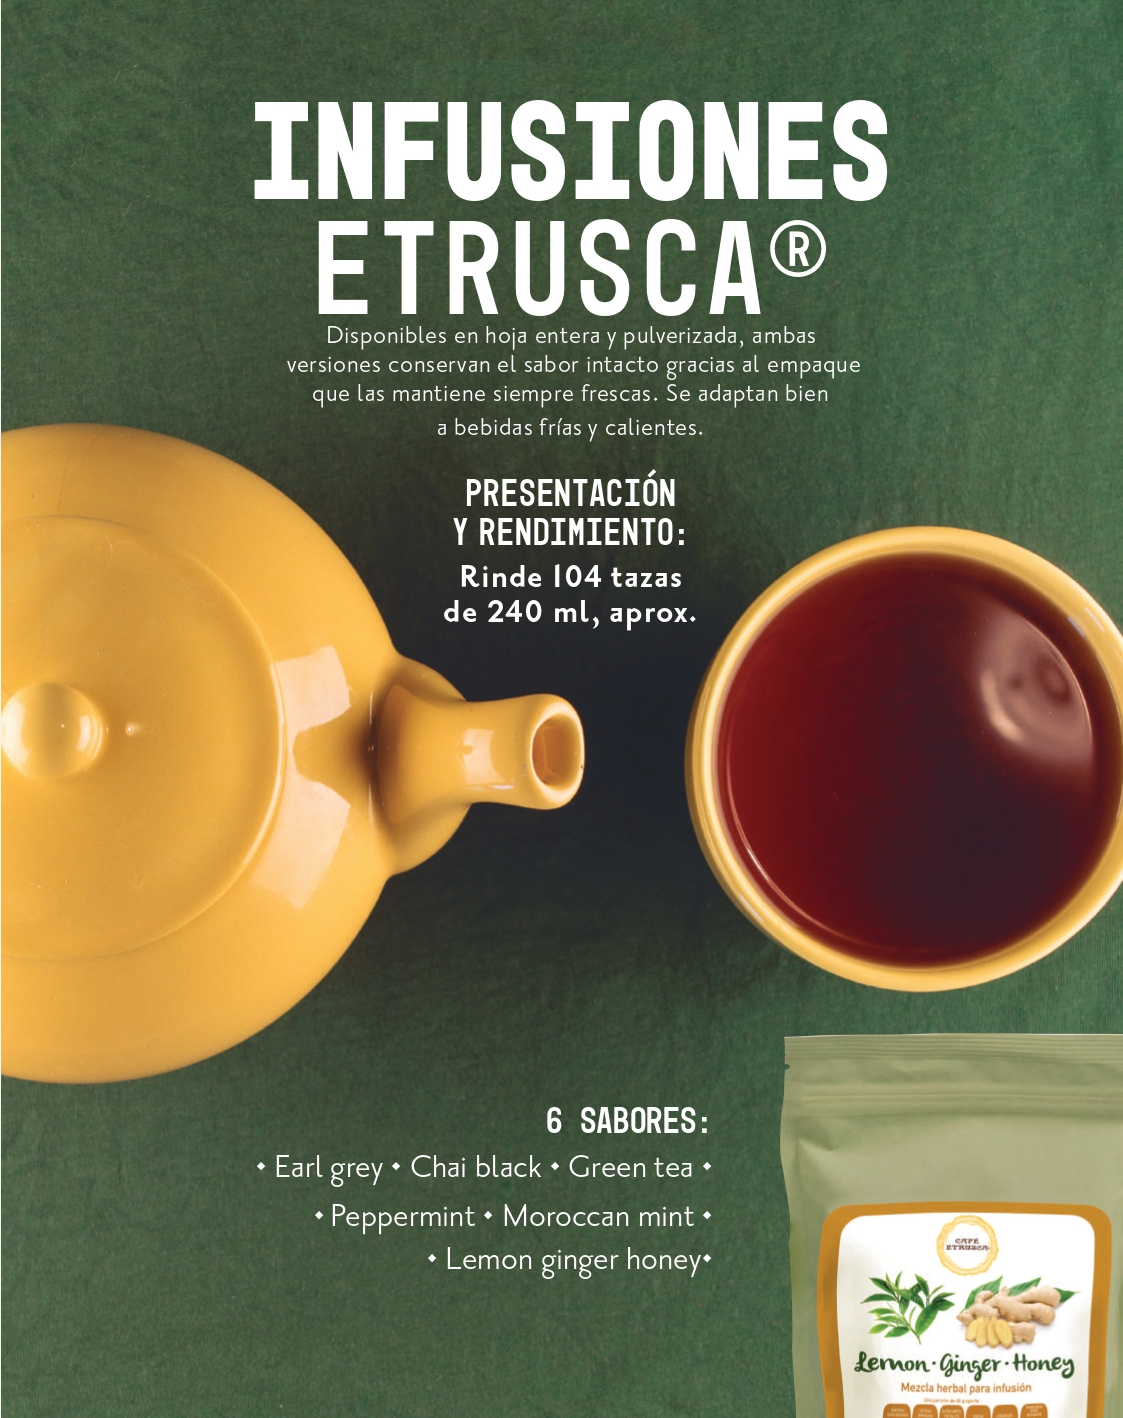 CATALOGO_ETRUSCA_2020_FINAL_compressed-21-54_pages-to-jpg-0033